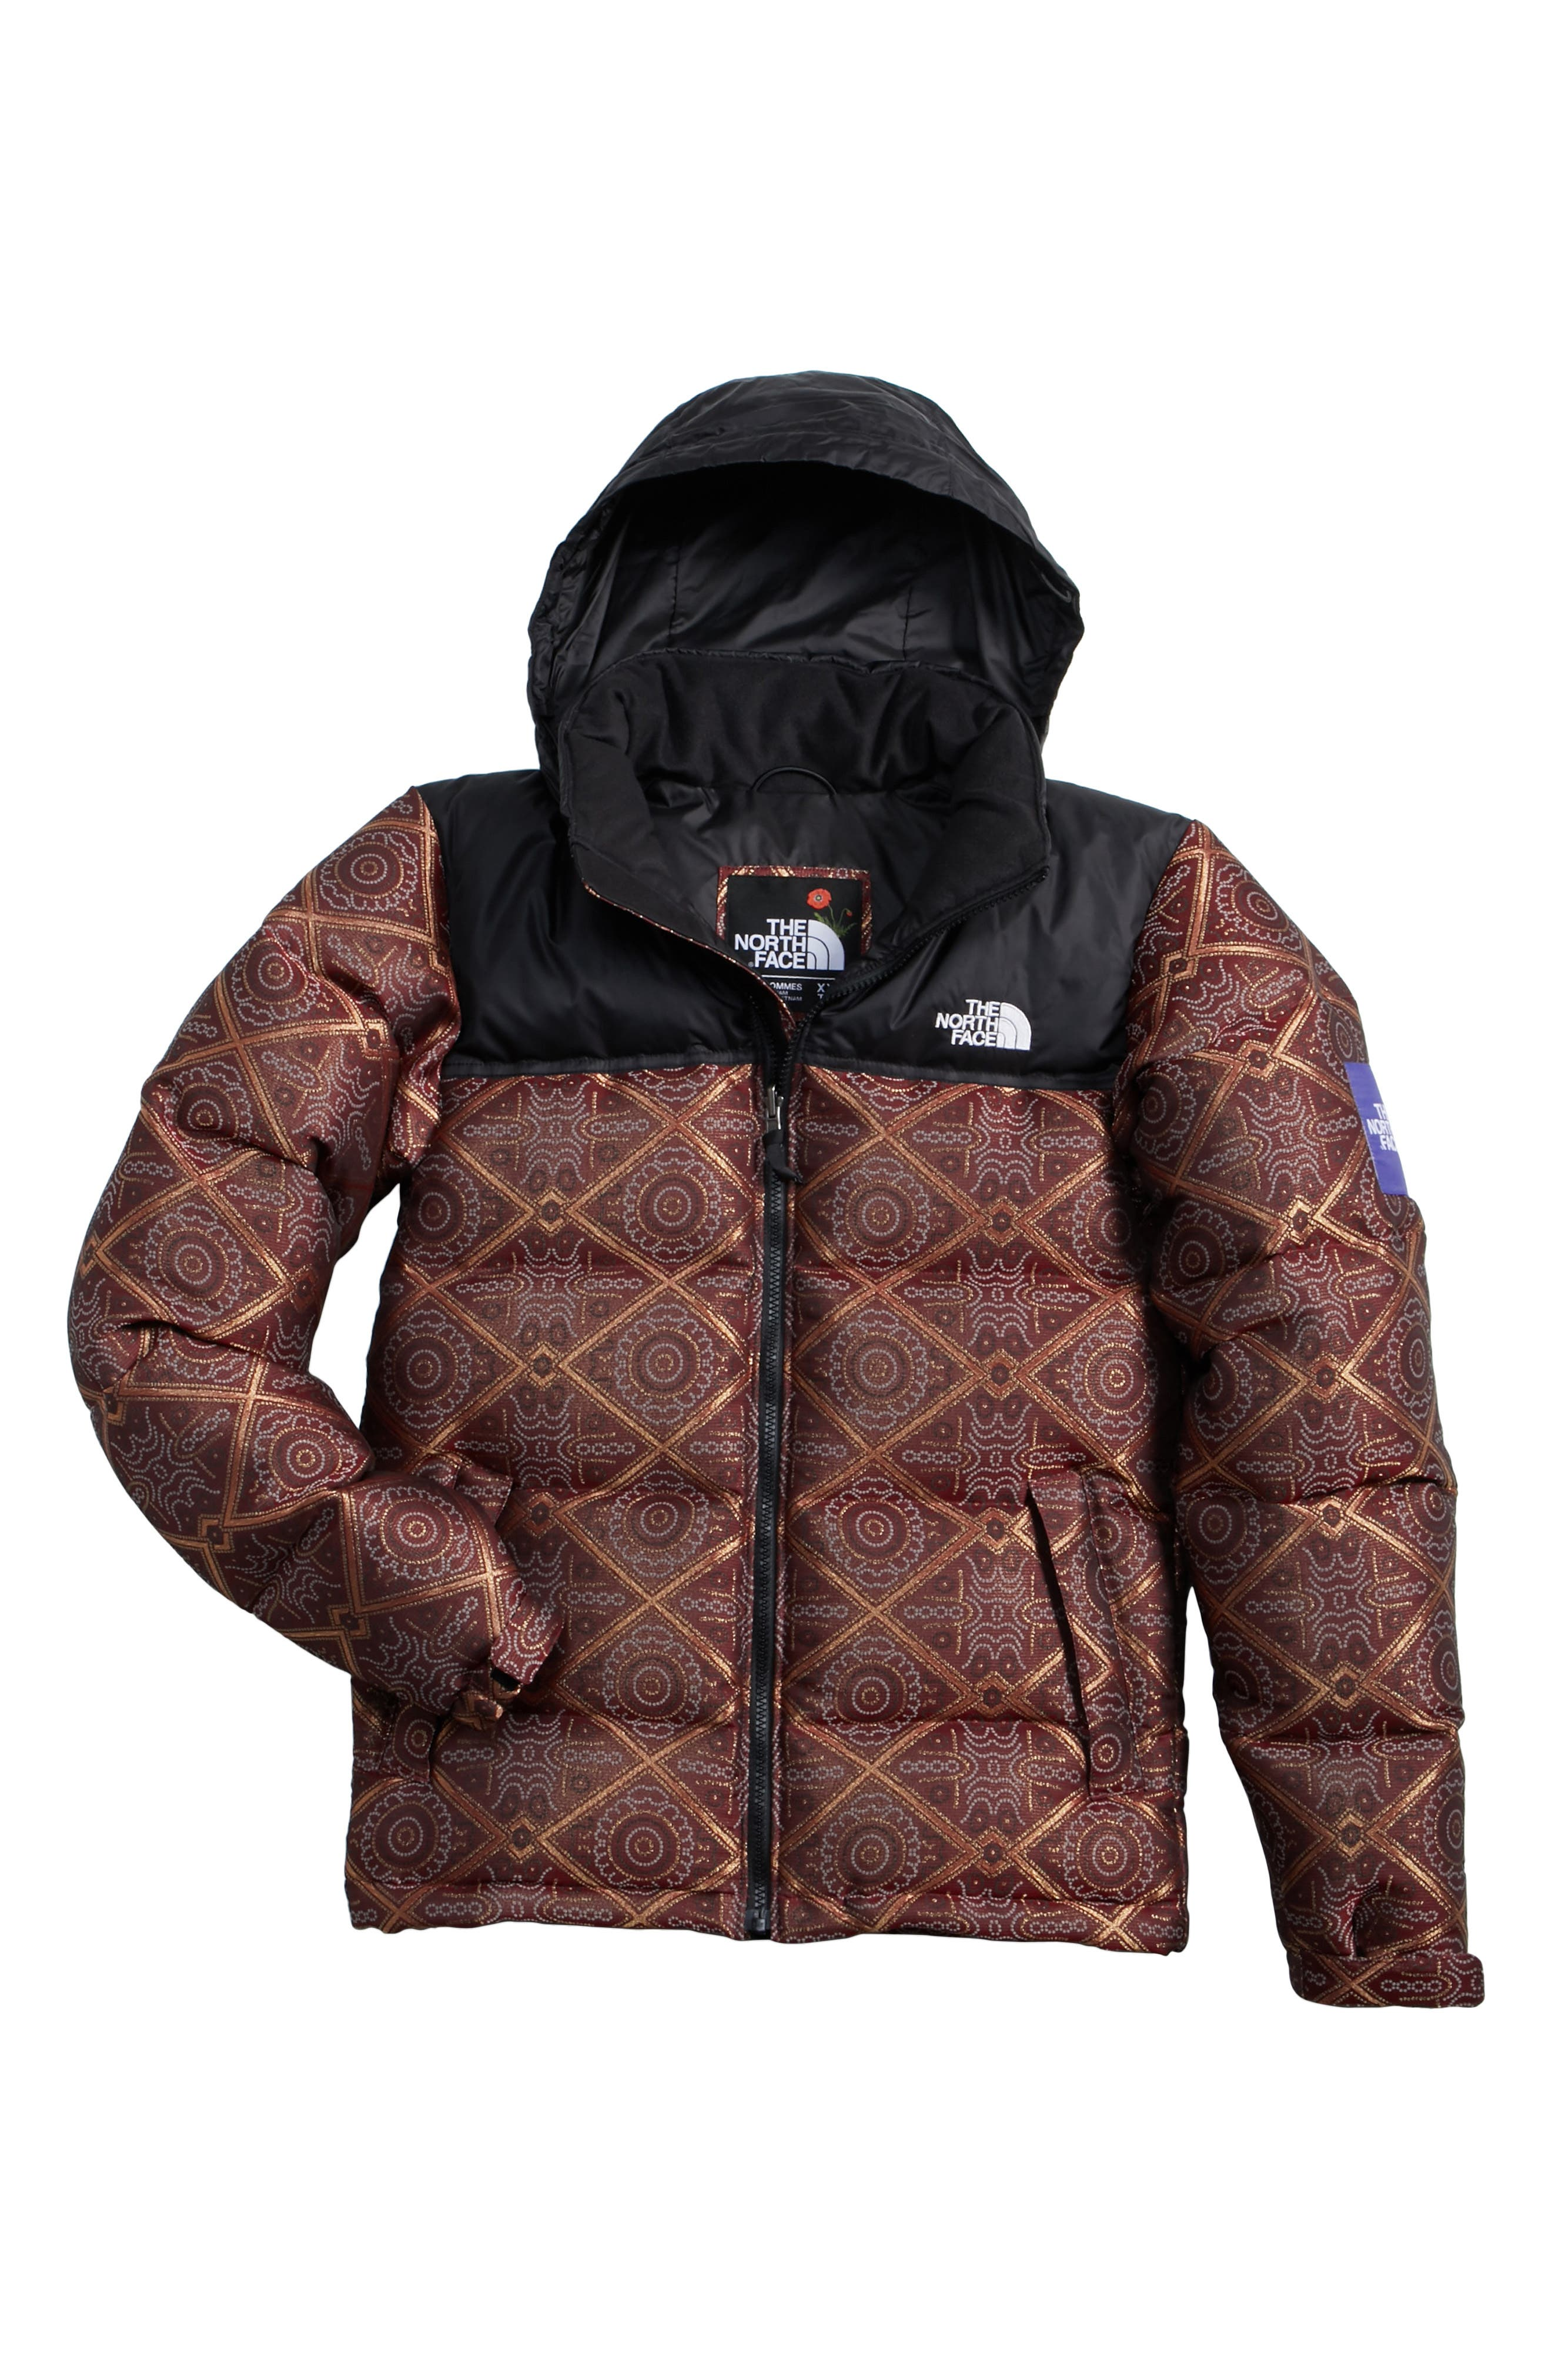 The North Face Nuptse 700-Fill Power Down Puffer Jacket